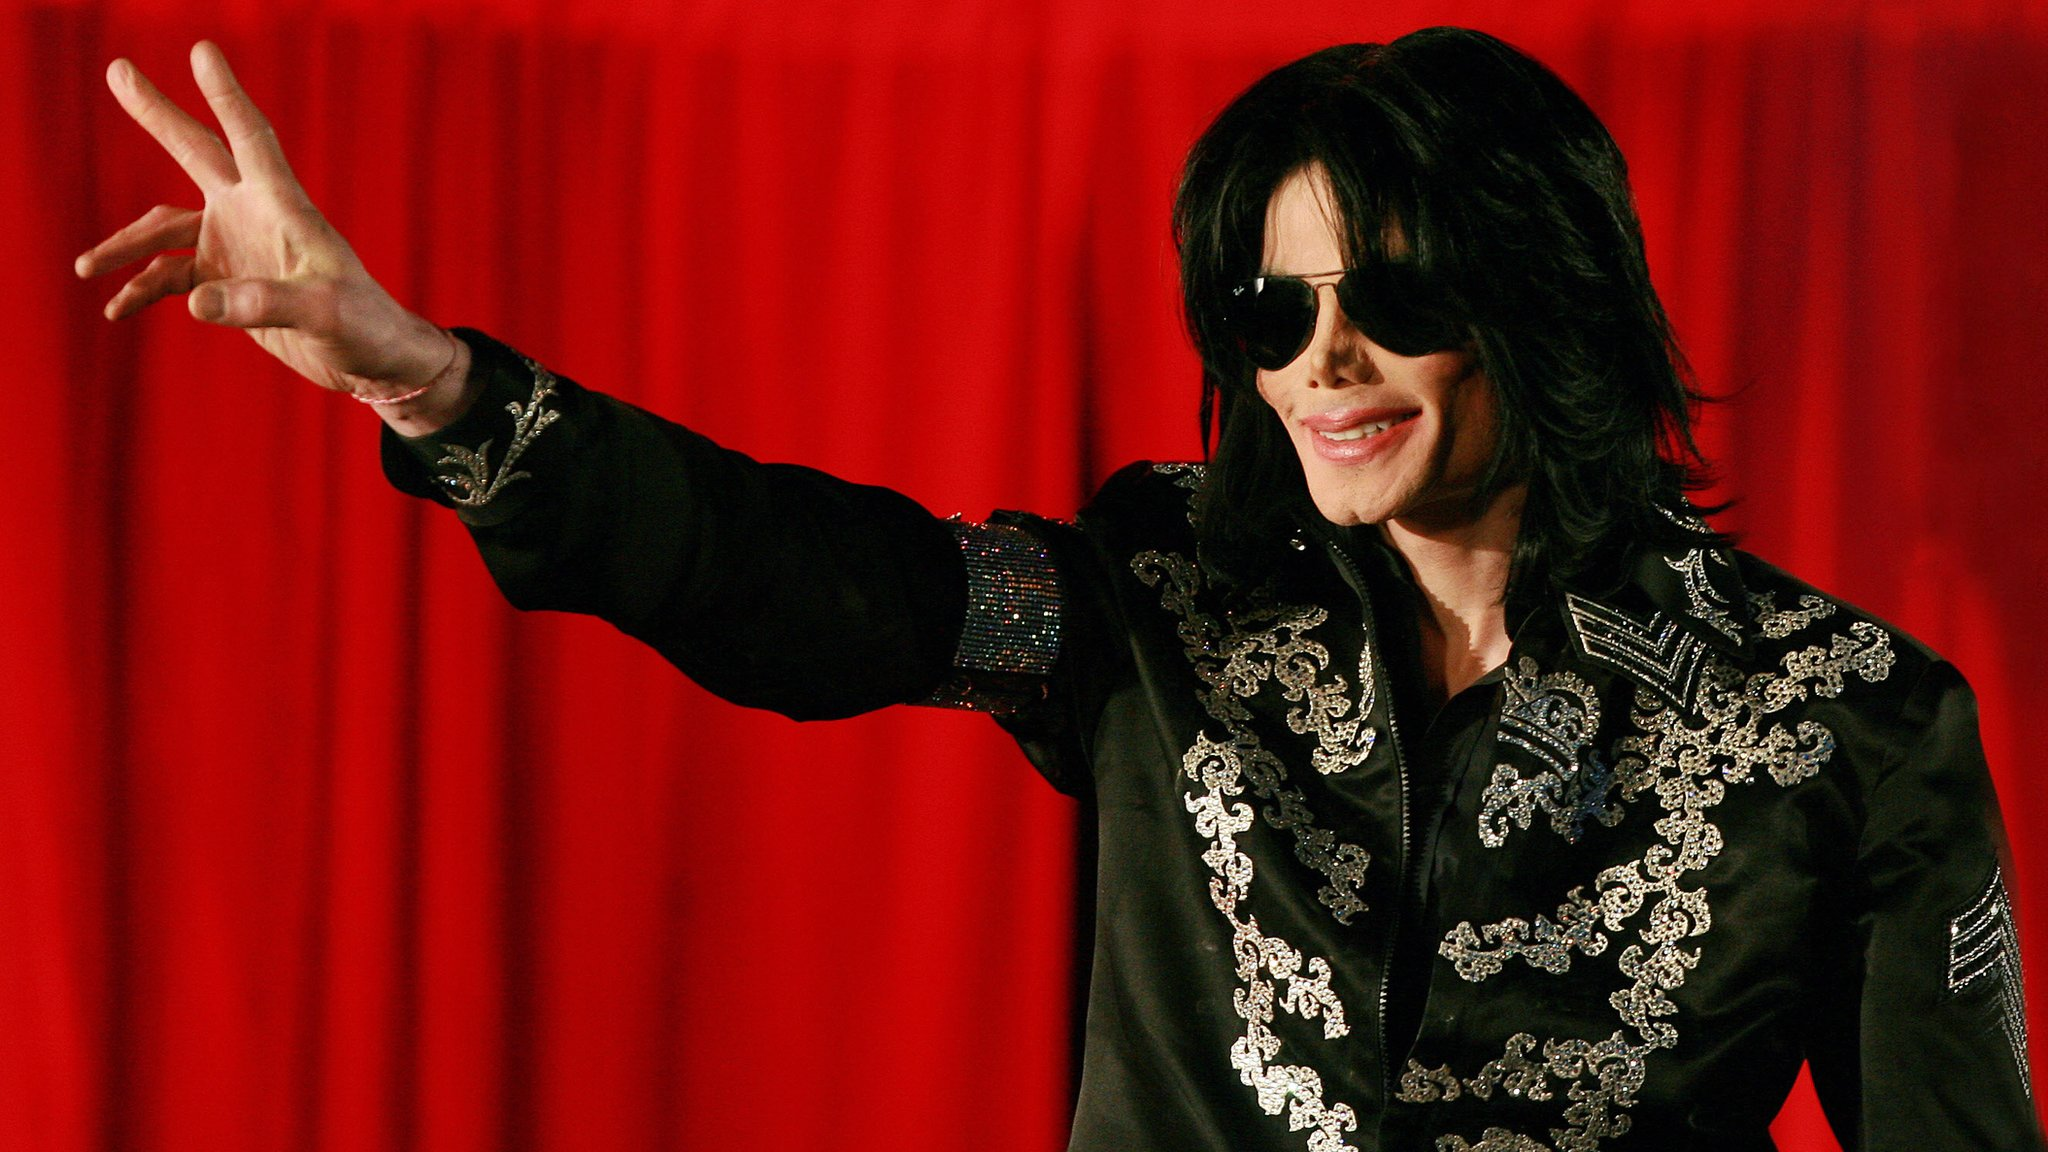 BBC News - Michael Jackson: The story of the troubled star's final day, 10 years on